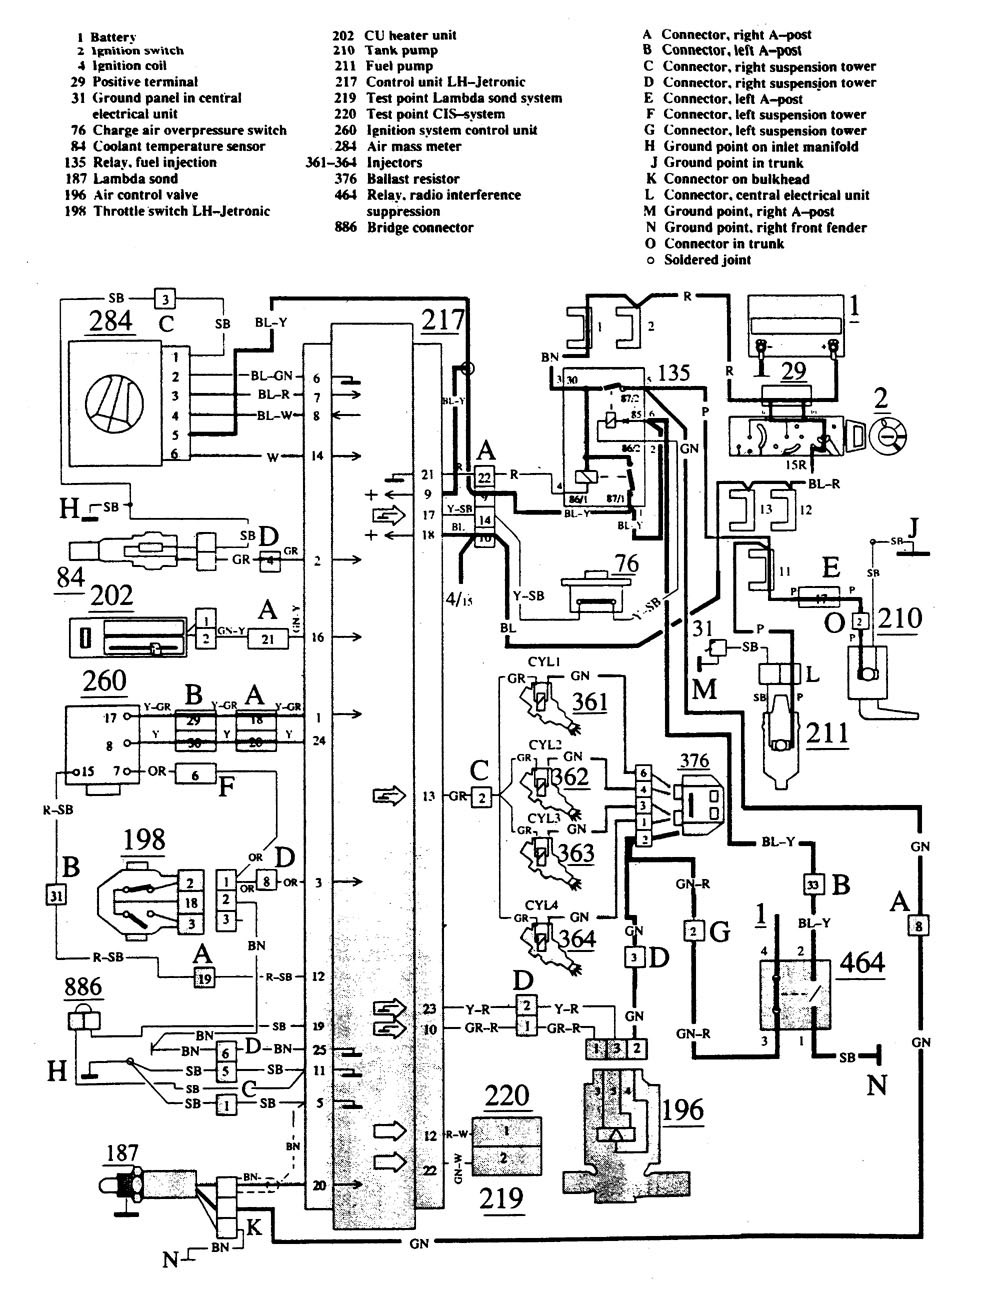 Volvo 740 Wiring Harness Free Diagram For You Truck Electrical Diagrams 1987 Turbo Auto Wg64t Trailer